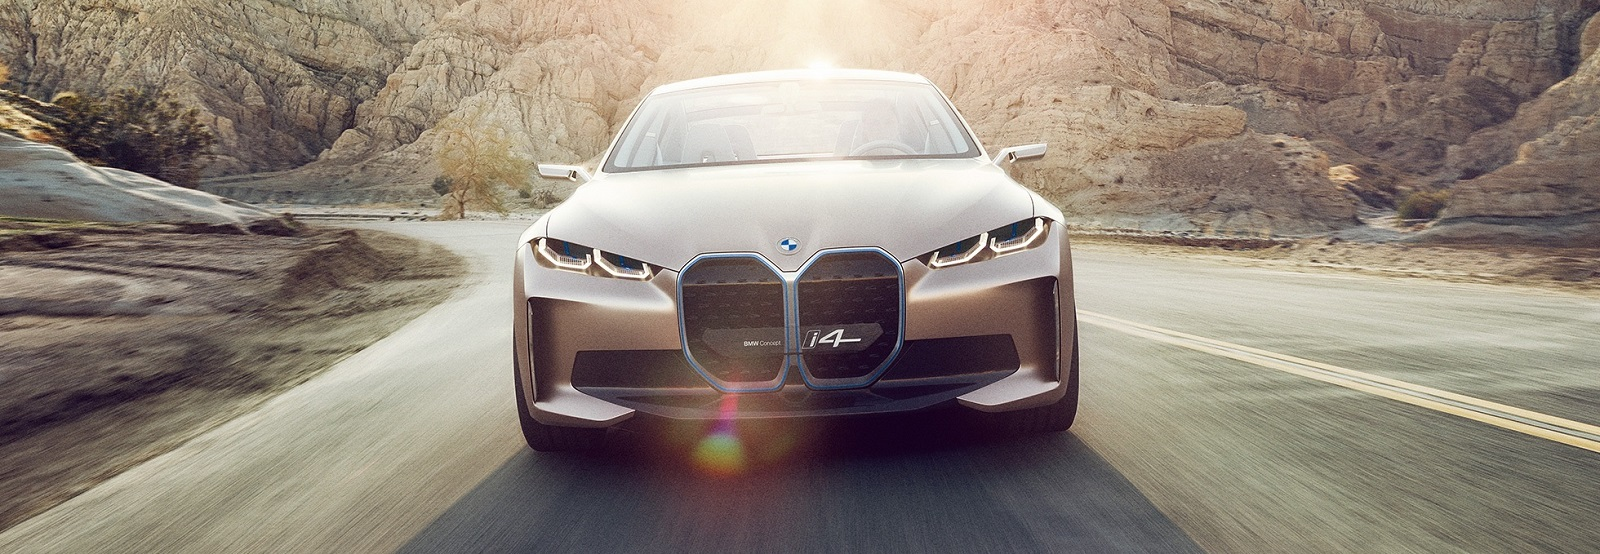 BMW Concept i4 | Purely Electric Gran Coupe